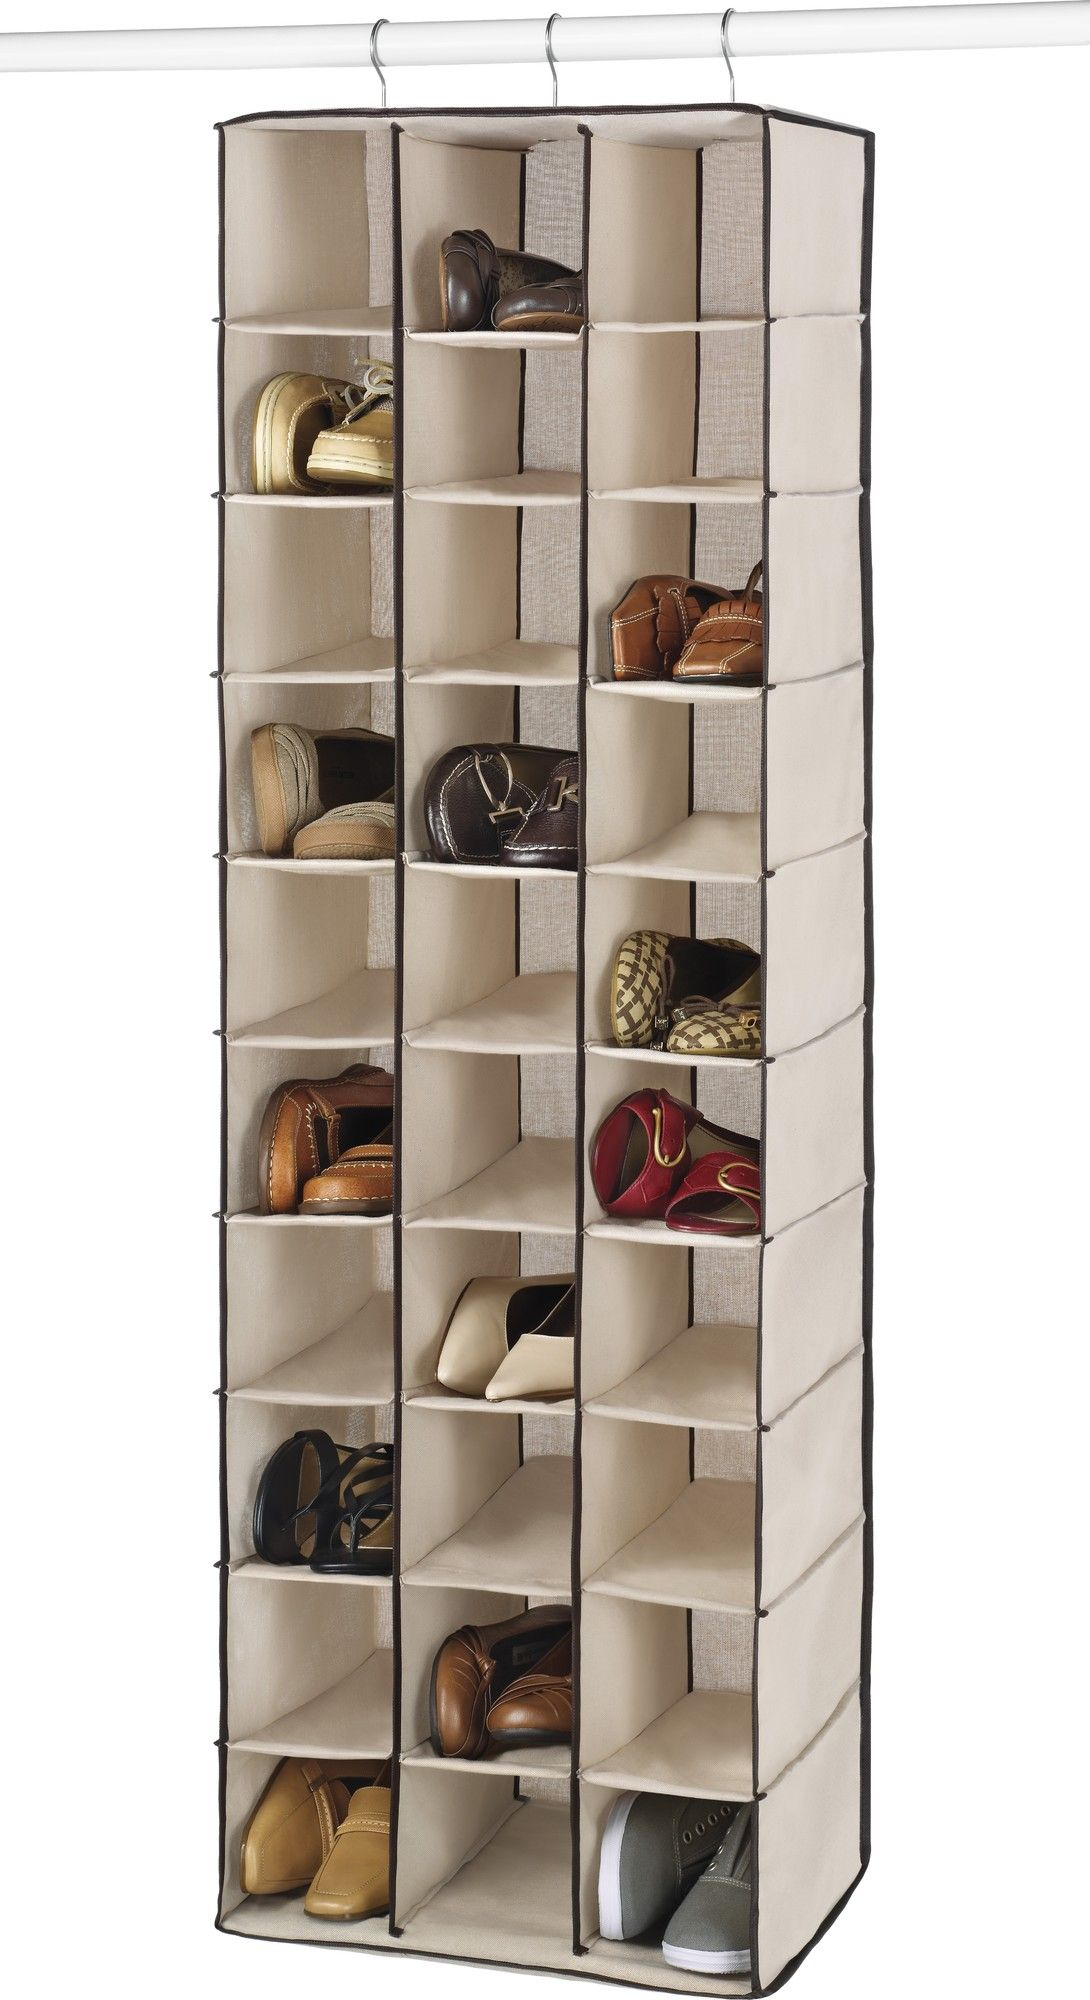 Uncategorized Shoe Cabinet Organizer 30 pocket hanging shoe organizer apartment pinterest whitmor shelves sections whitmor